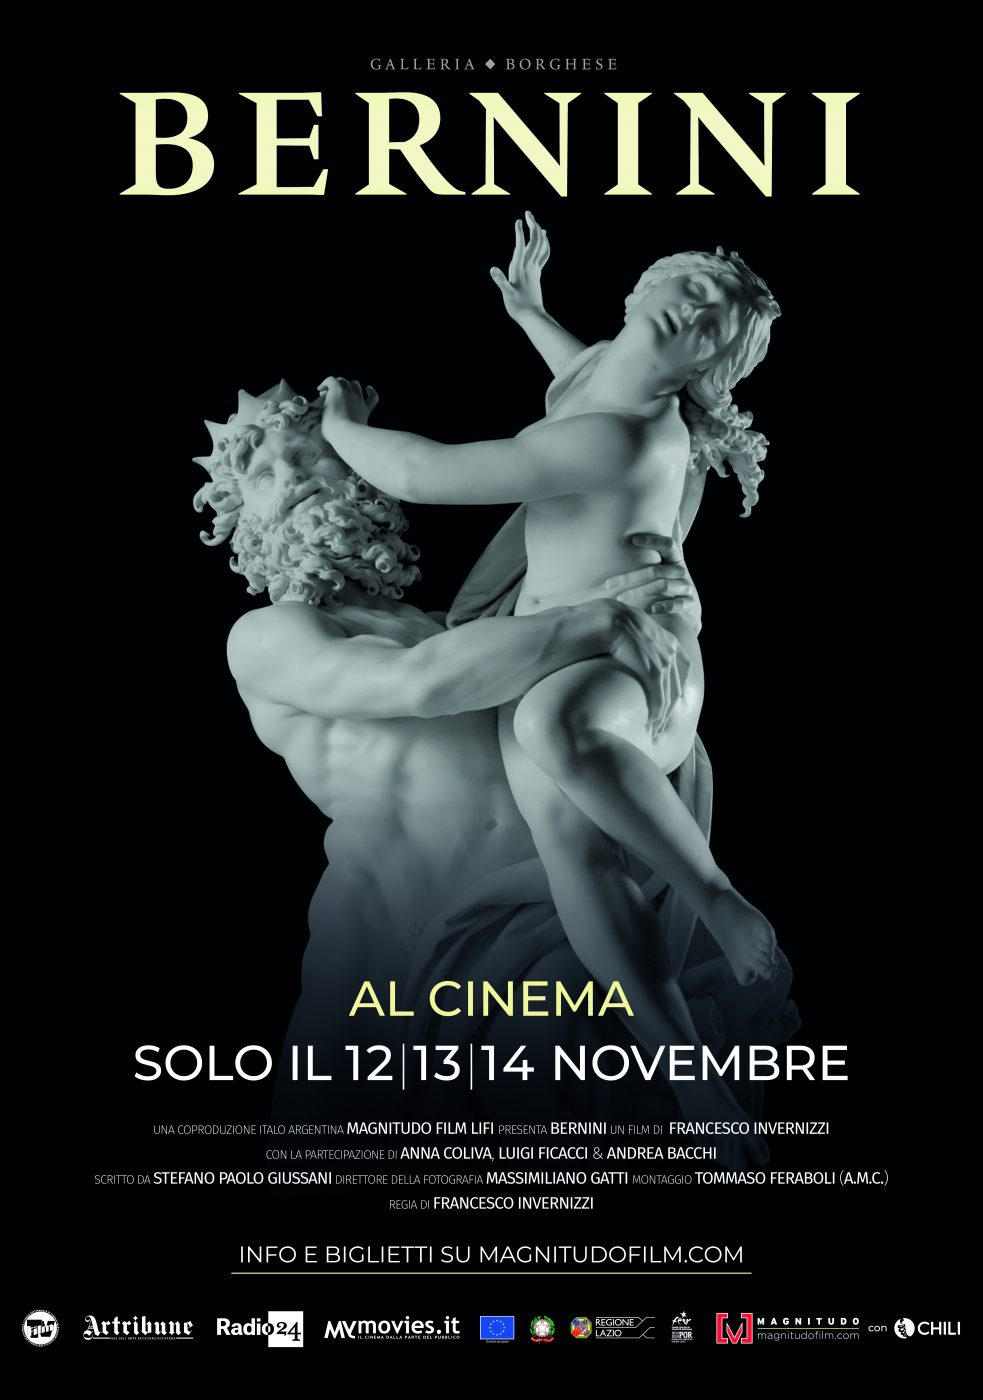 L'arte al cinema -Evento Speciale BERNINI di Francesco Invernizzi